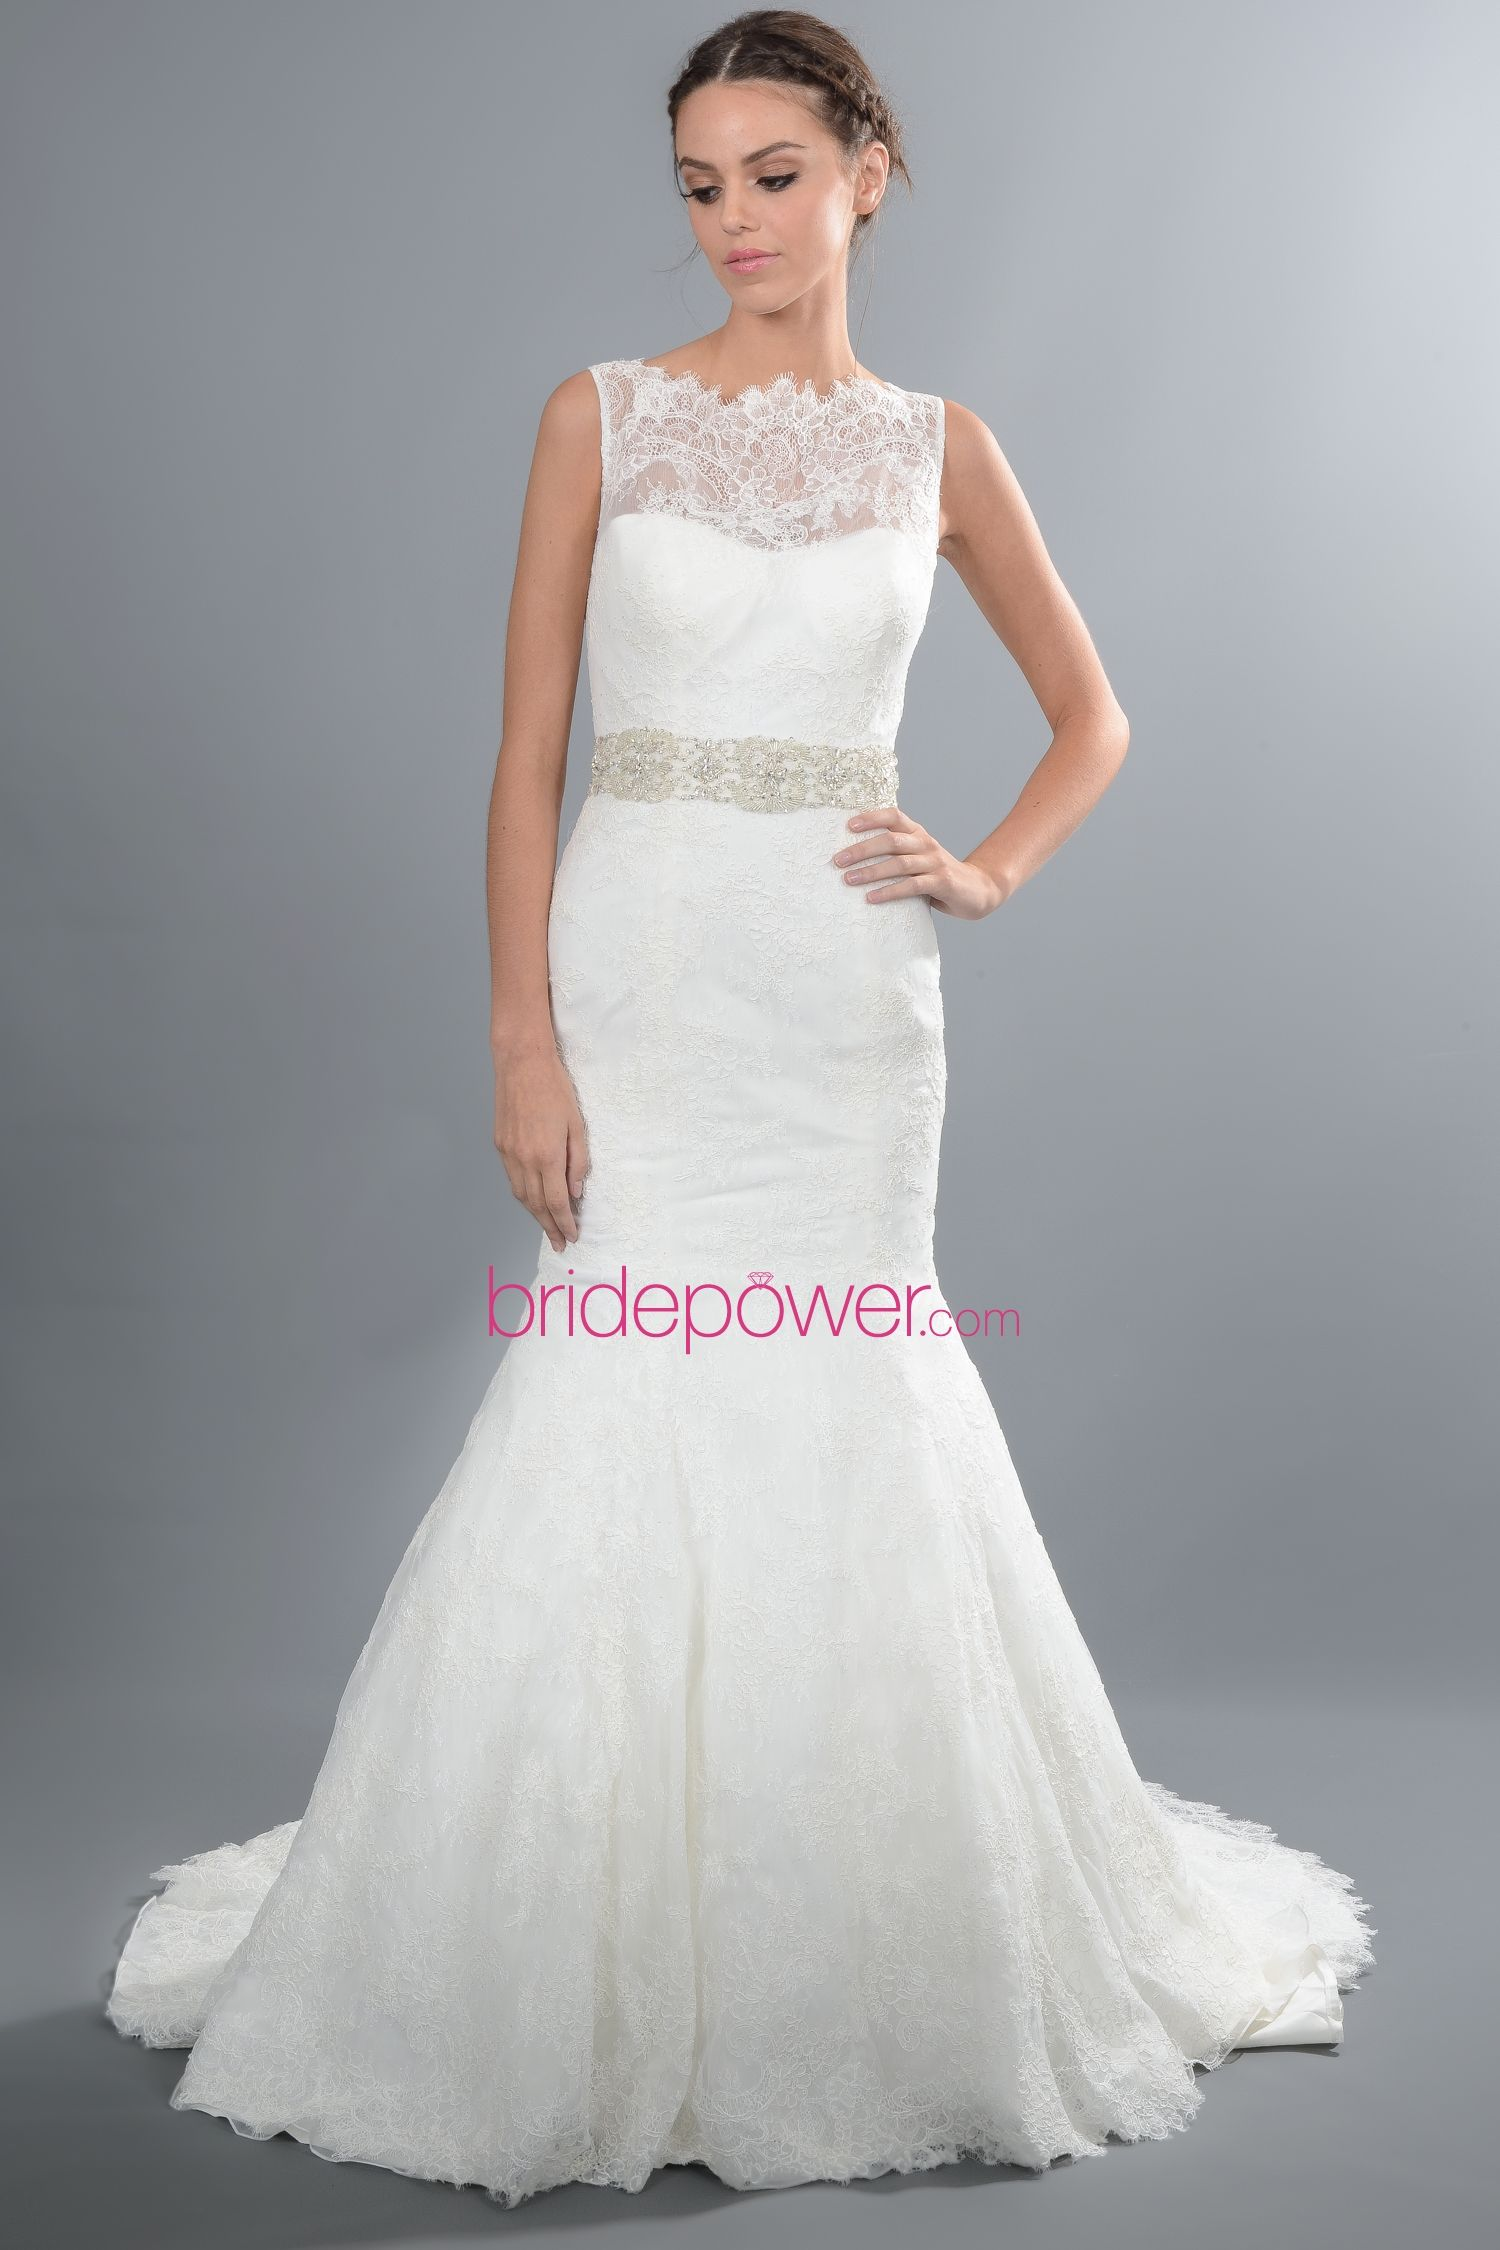 Liv Harris Trumpet Front From Vows Bridal Outlet Ma Wedding Dresses Discount Bridal Gowns Discount Wedding Dresses